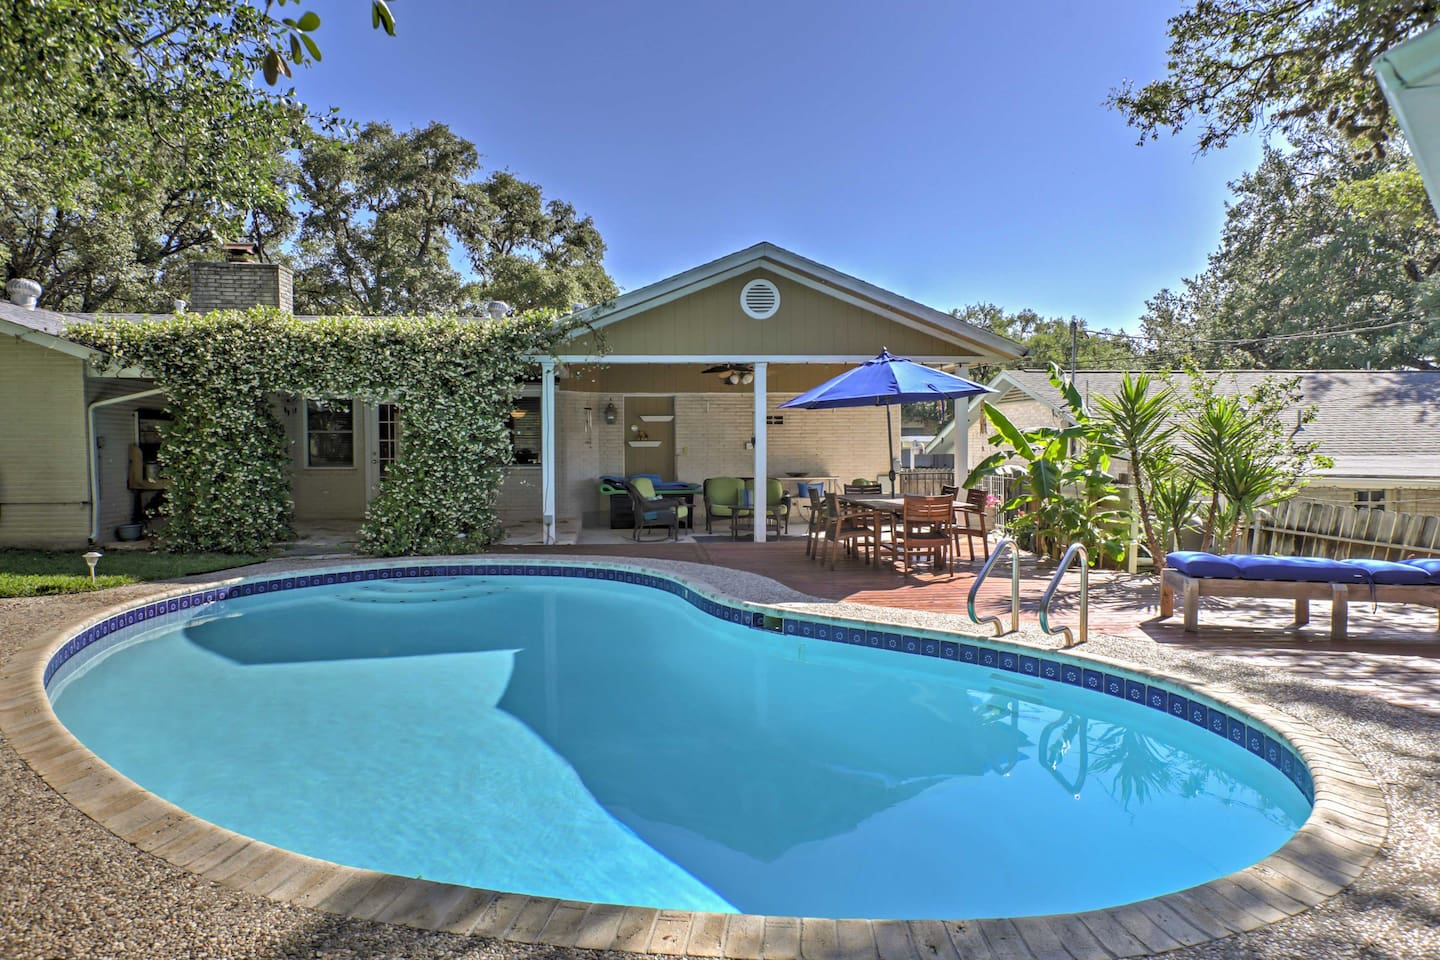 Pack your swimsuit and head to this 3-bedroom rental home in San Antonio, Texas!